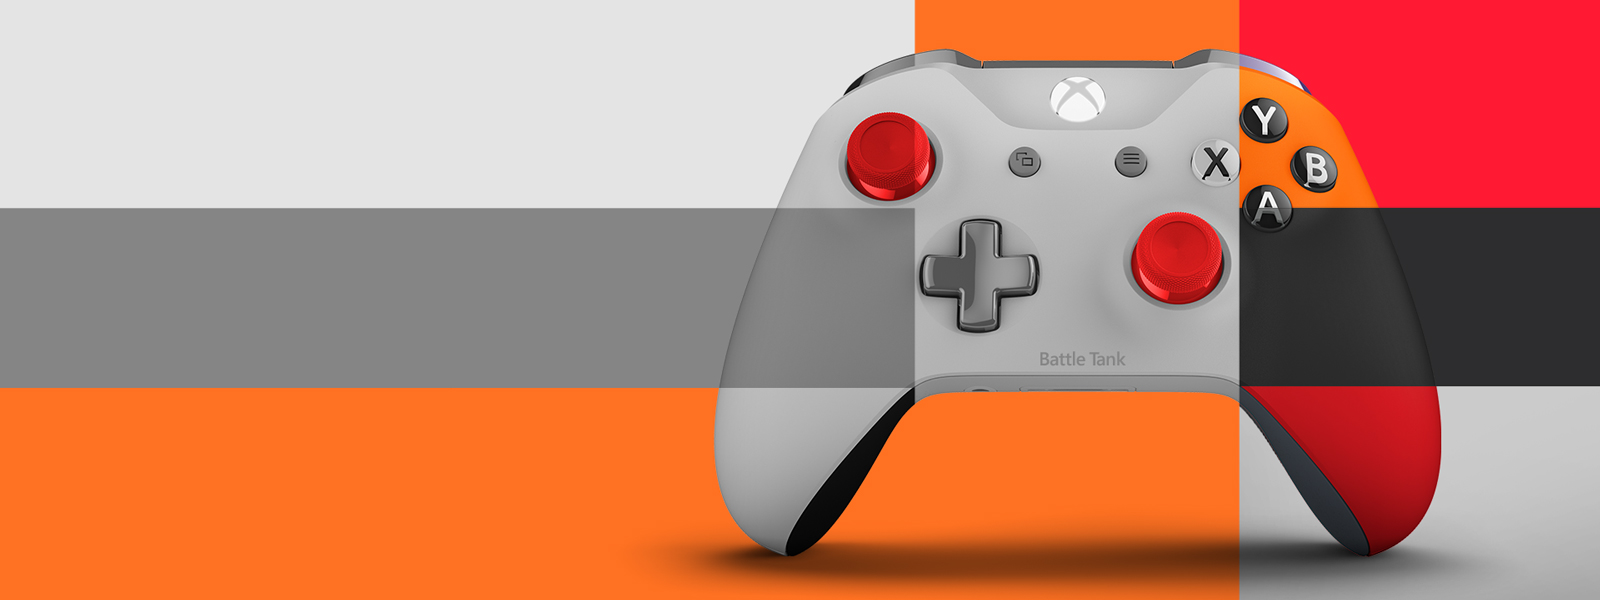 Xbox design lab controller in the Mondrian style